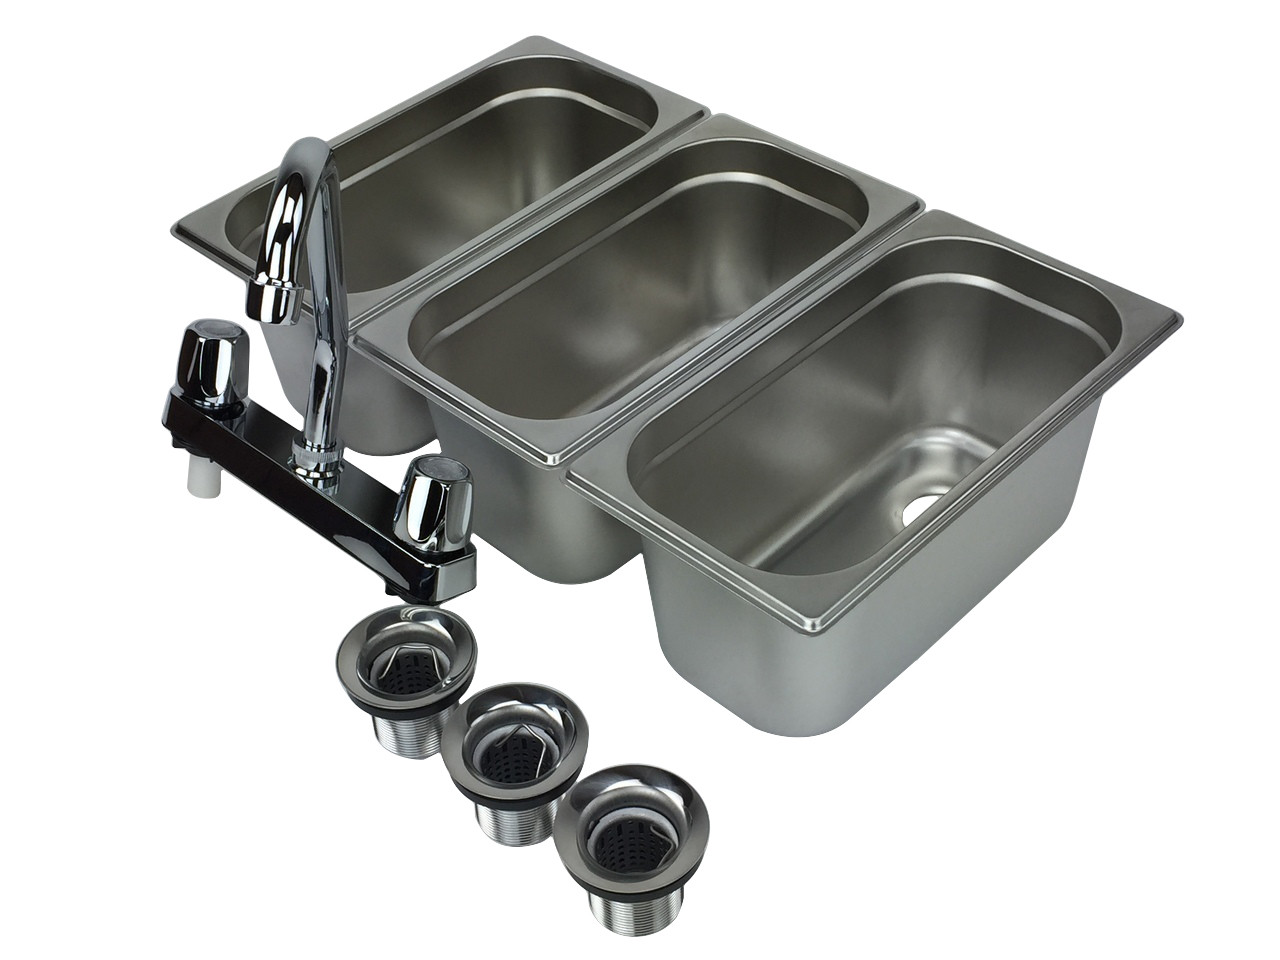 4 basin sink with faucets inner view